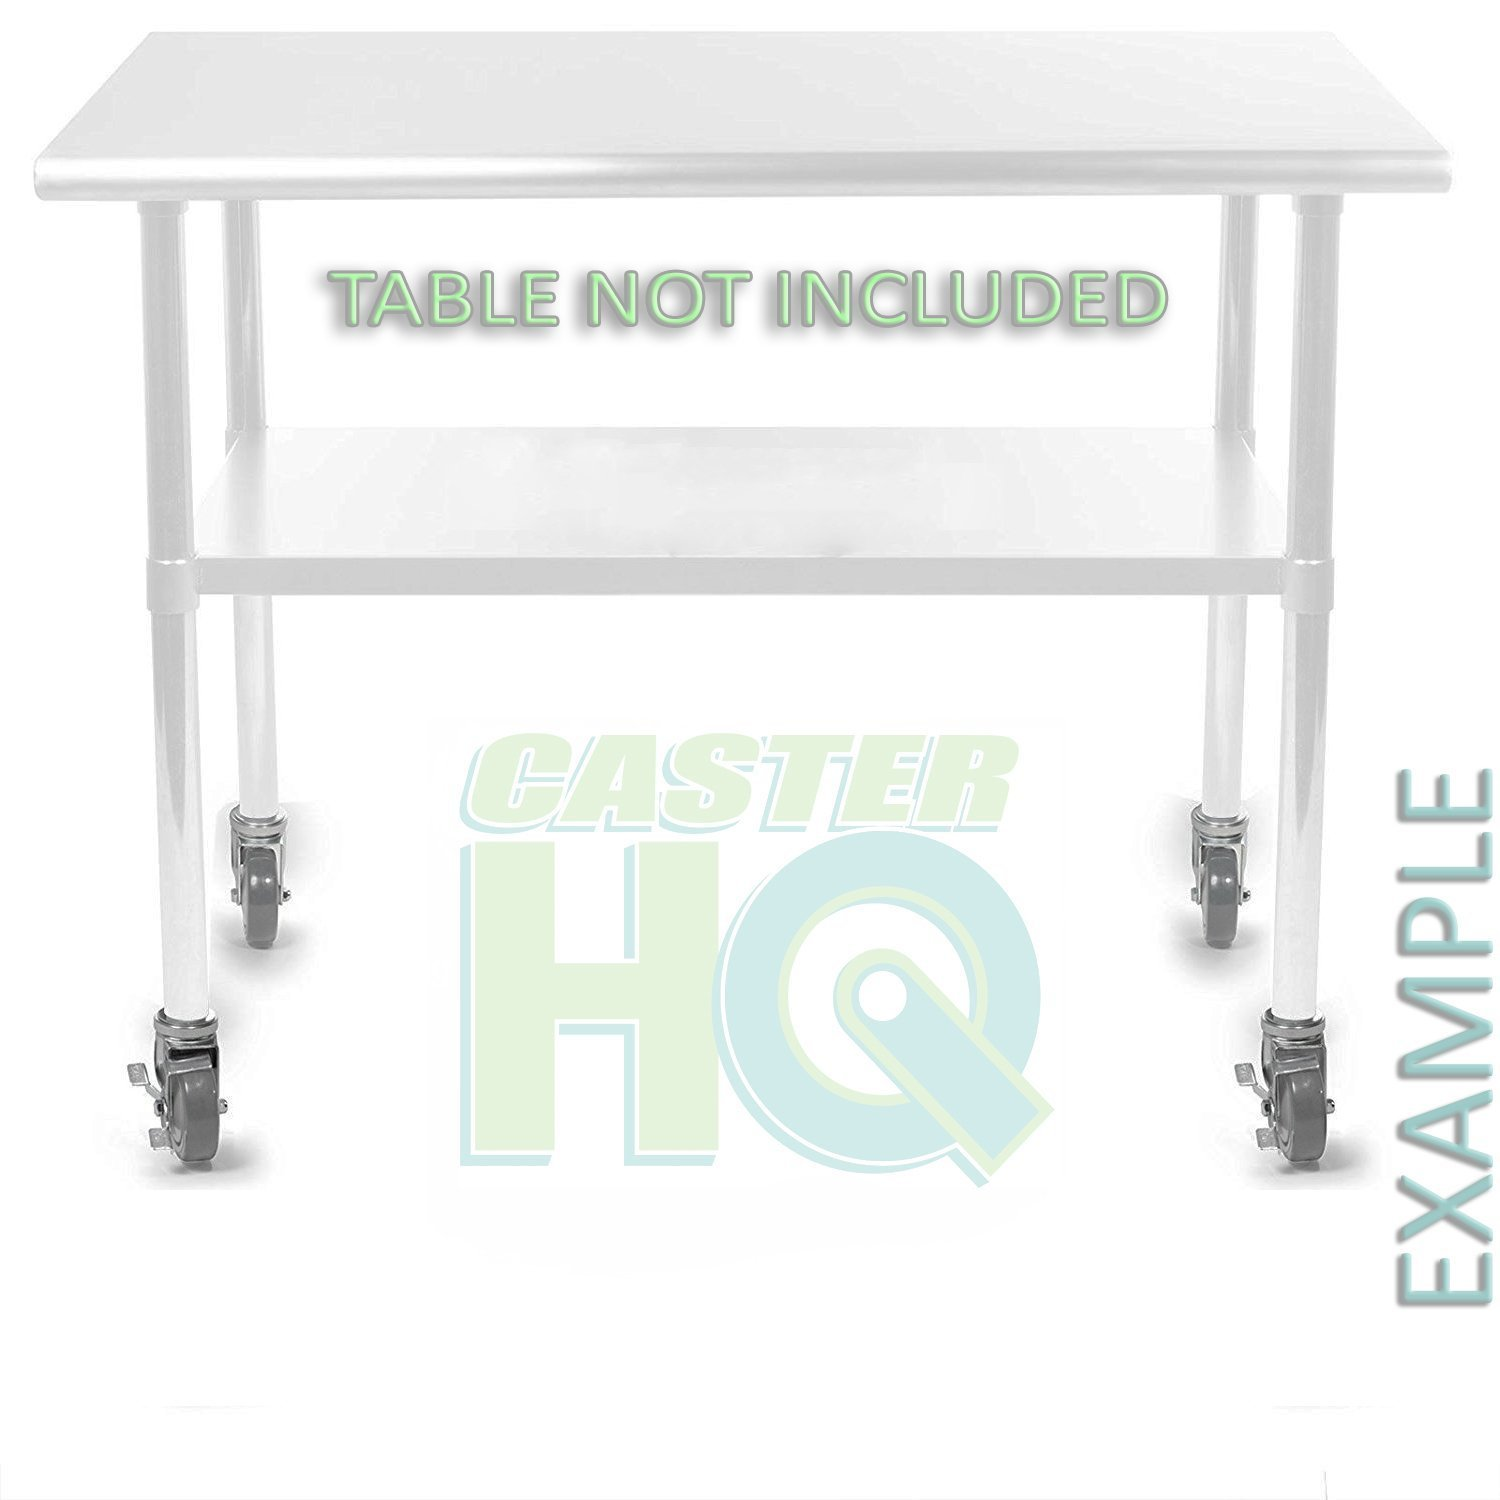 Caster for Work Tables, 3'' Polyurethane Wheel - 1-1/2'' Expanding Rubber Adapter - CasterHQ Brand by CasterHQ (Image #3)